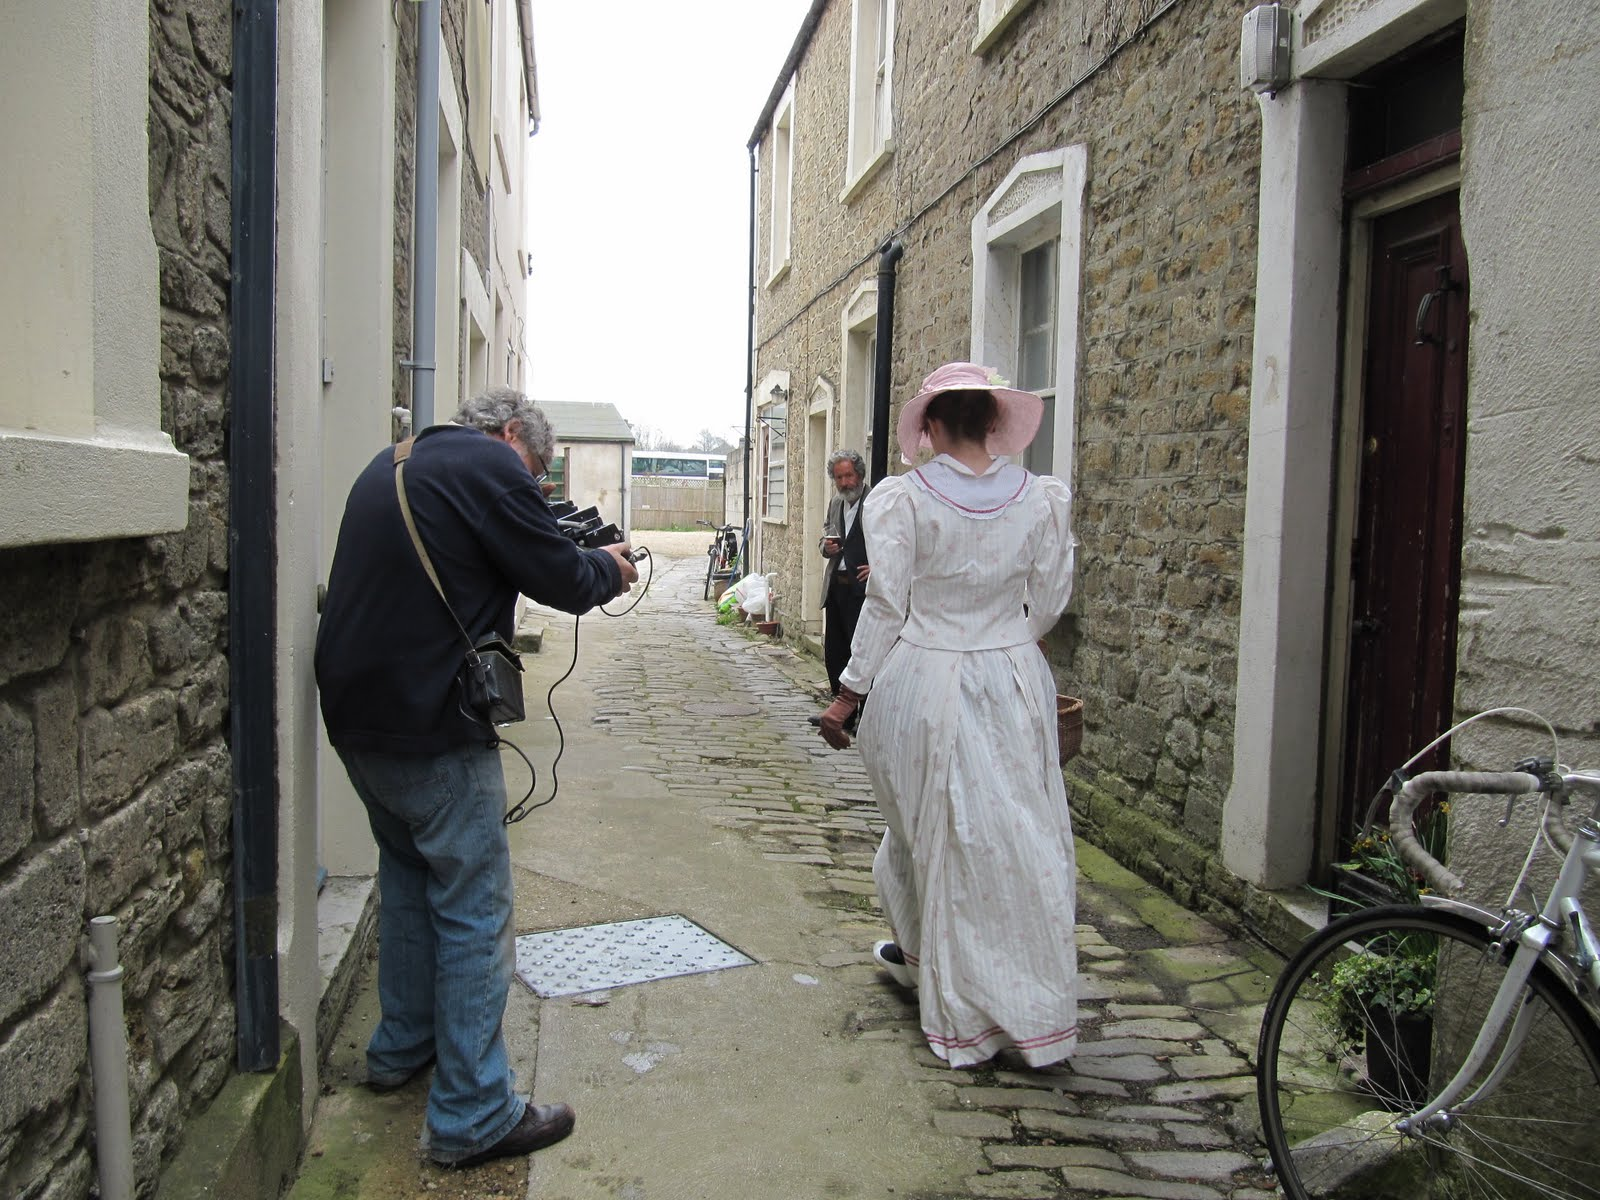 we were filming a short scene meant to be outside an edwardian pub the character drinking down the road did a very convincing drunken look